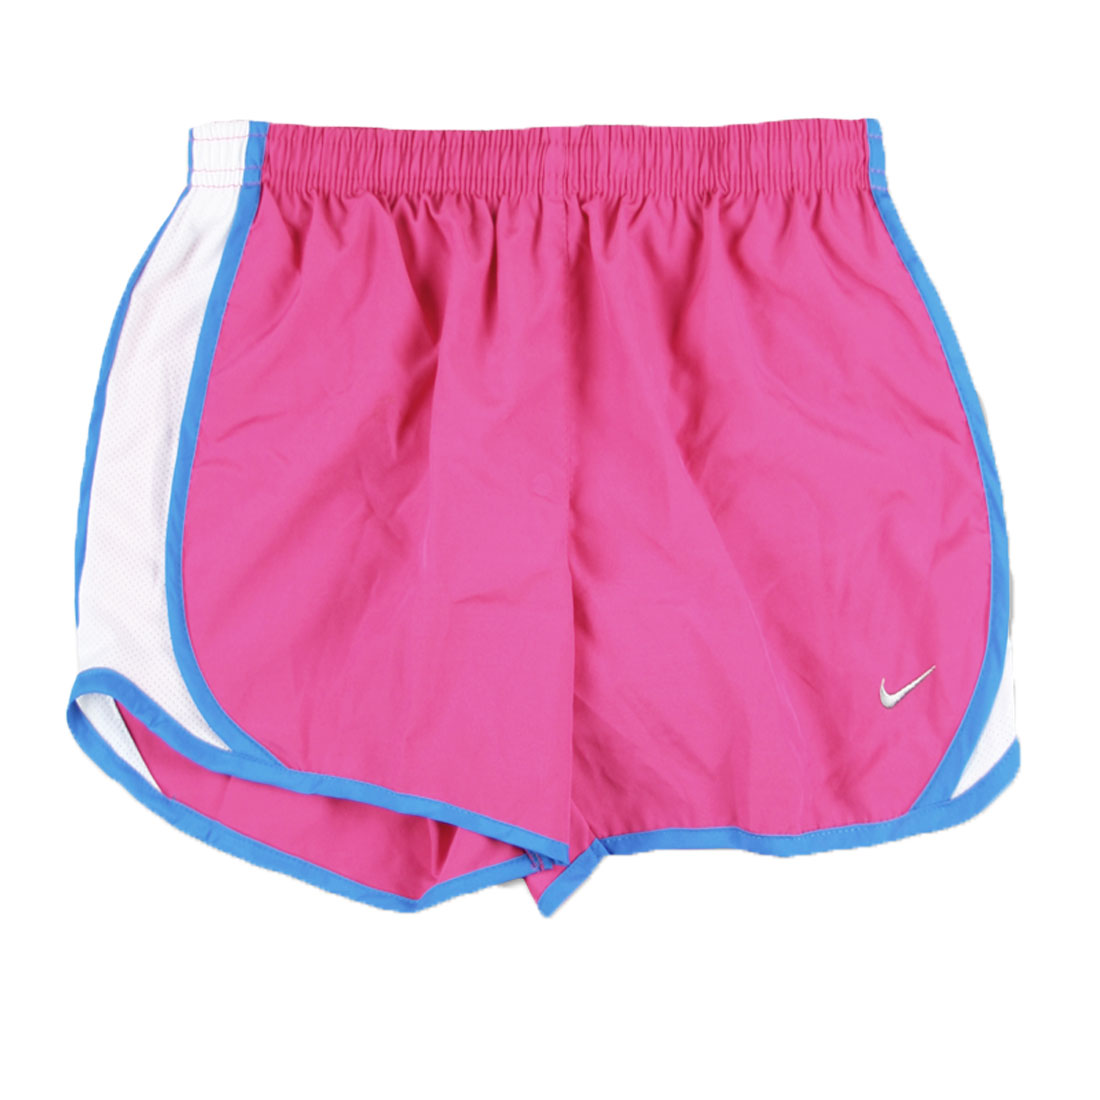 About Sport Shorts Training for a marathon, participating in a long-distance cycle race, and hitting the beach for a friendly game of volleyball gets your heart pumping and requires the right gear. Investing in a pair of sport shorts can ensure that you are comfortable .